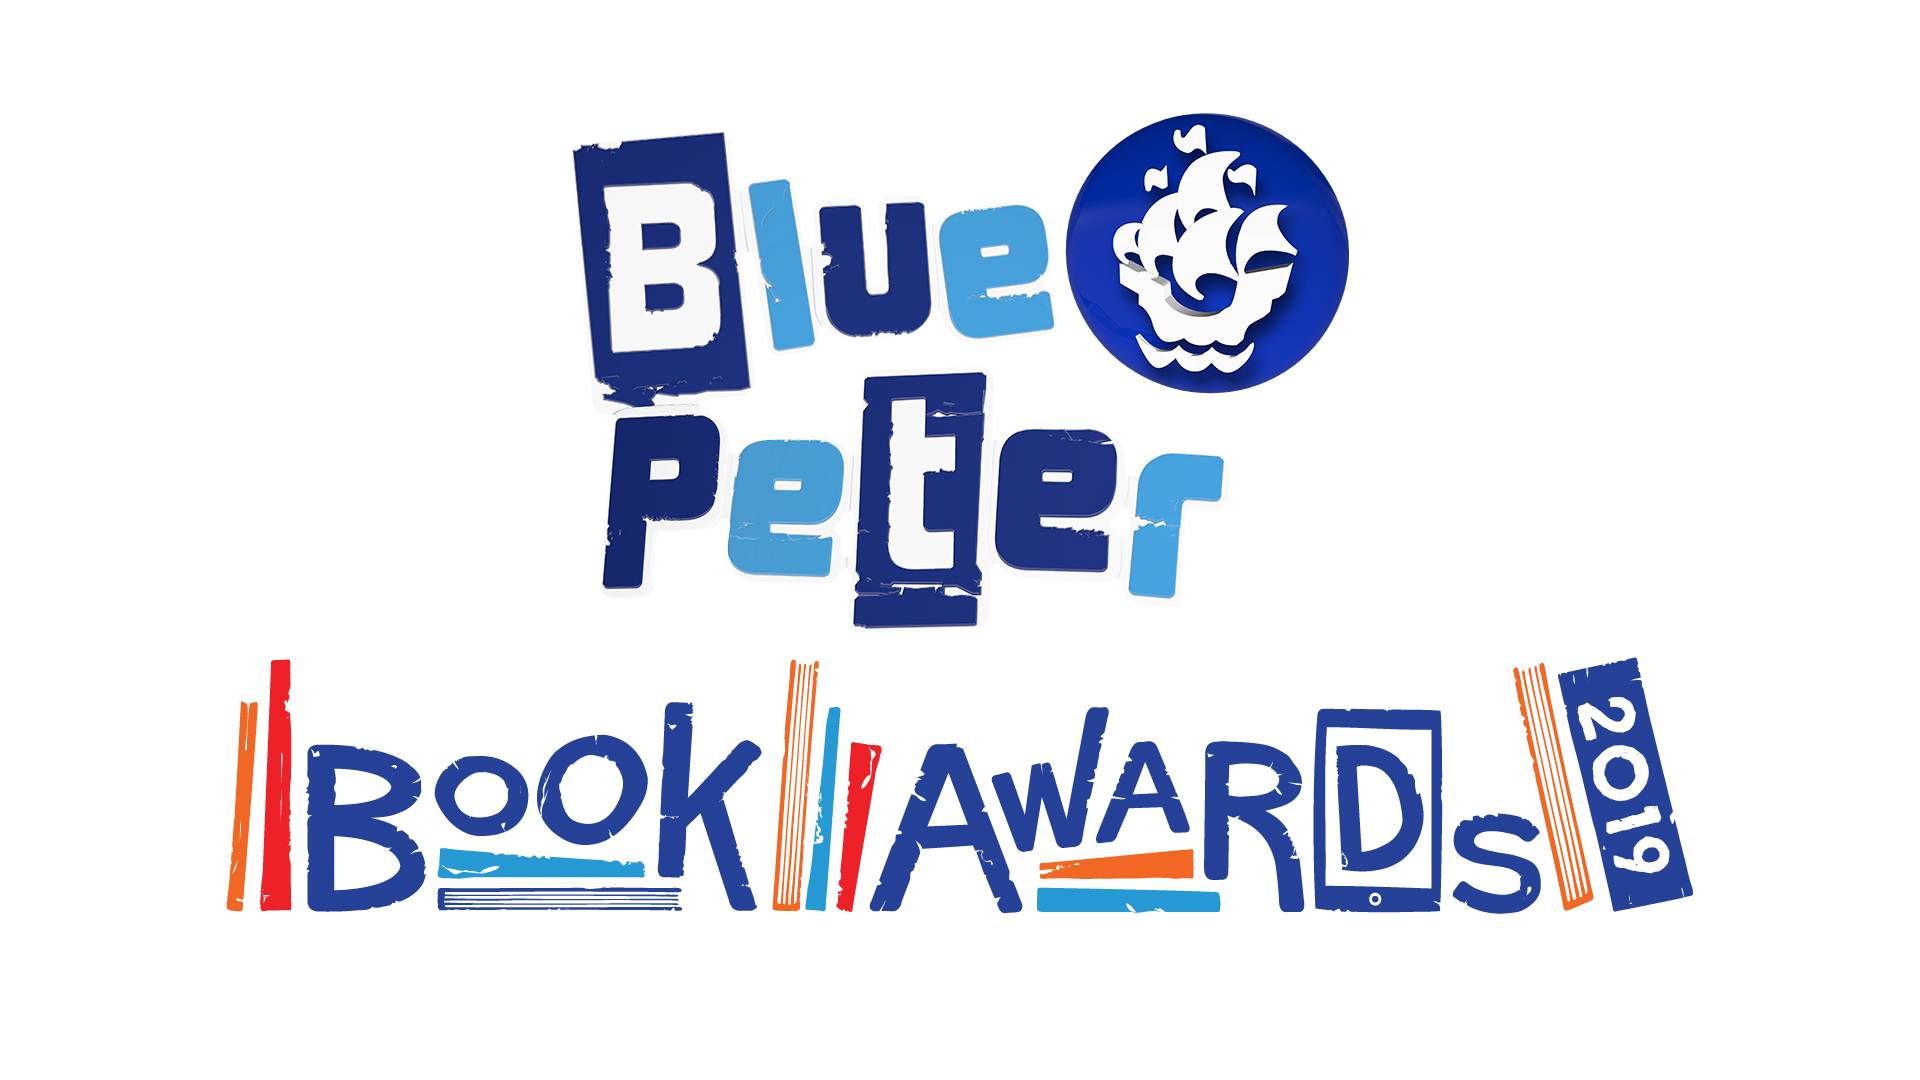 Children's book about a Syrian refugee wins this year's Blue Peter award